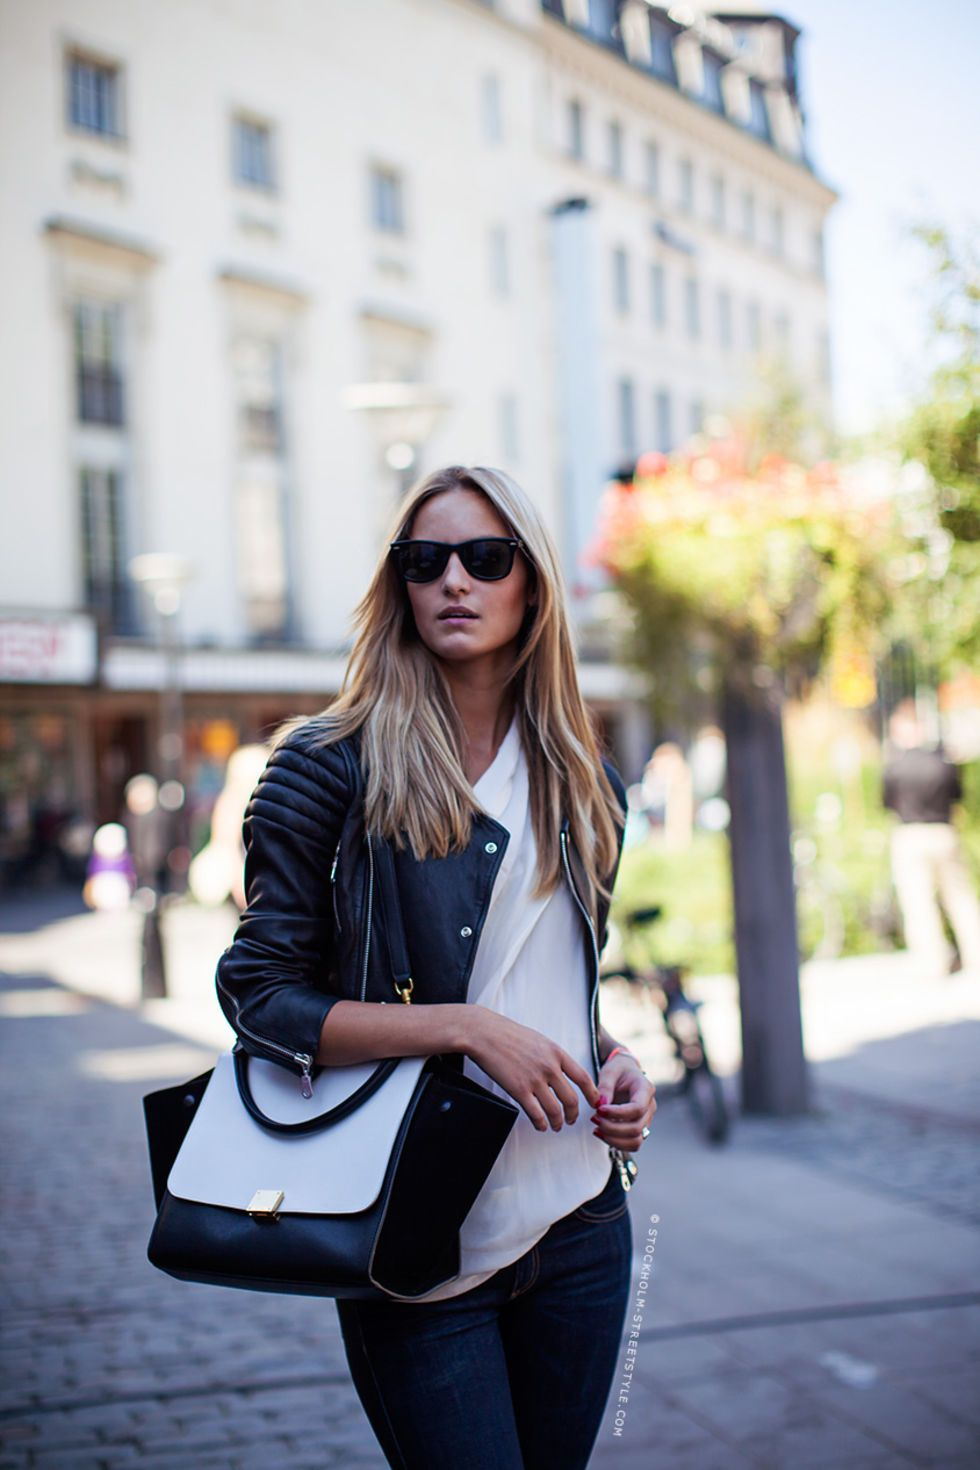 theres alexandersson http://carolinesmode.com/stockholmstreetstyle/art/280260/theres_alexandersson/